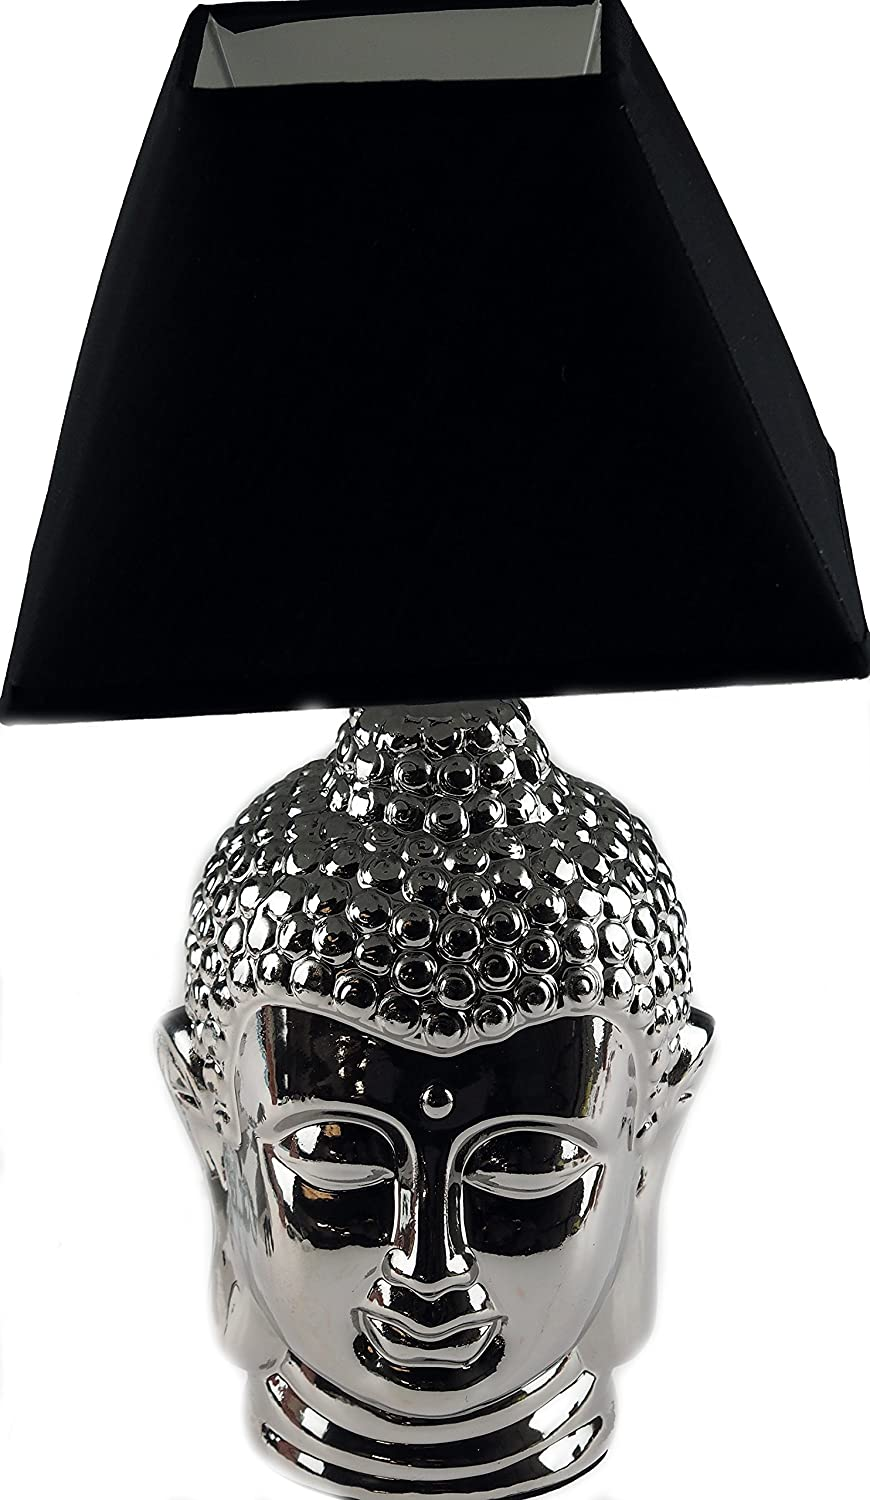 Thai buddha 35cm silver table side lamp with black shade amazon thai buddha 35cm silver table side lamp with black shade amazon kitchen home aloadofball Images